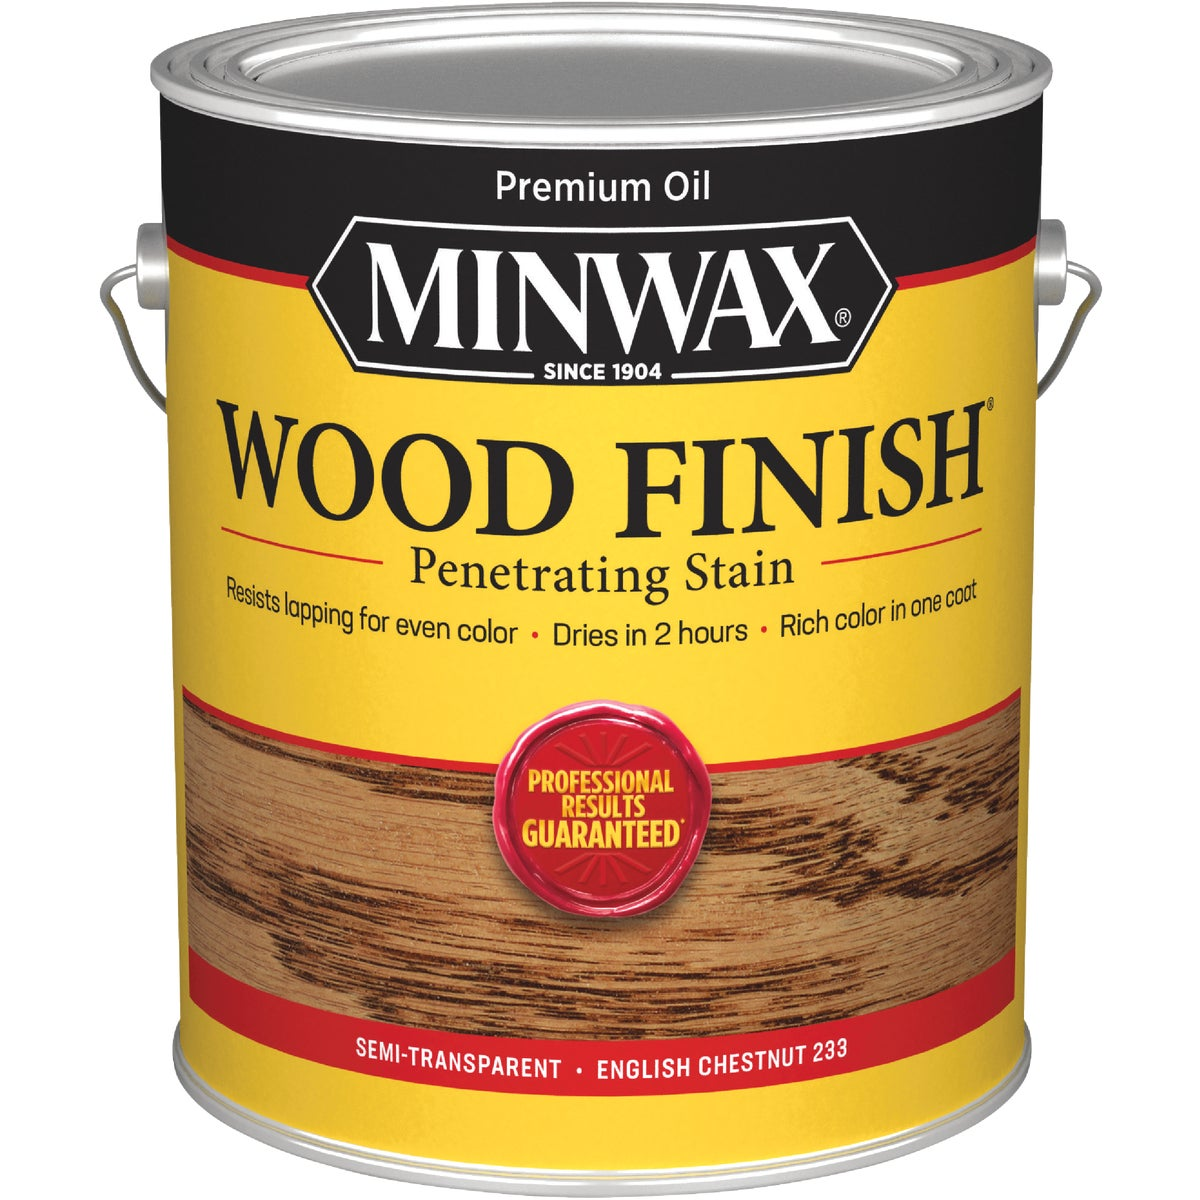 ENGL CHESTNUT WOOD STAIN